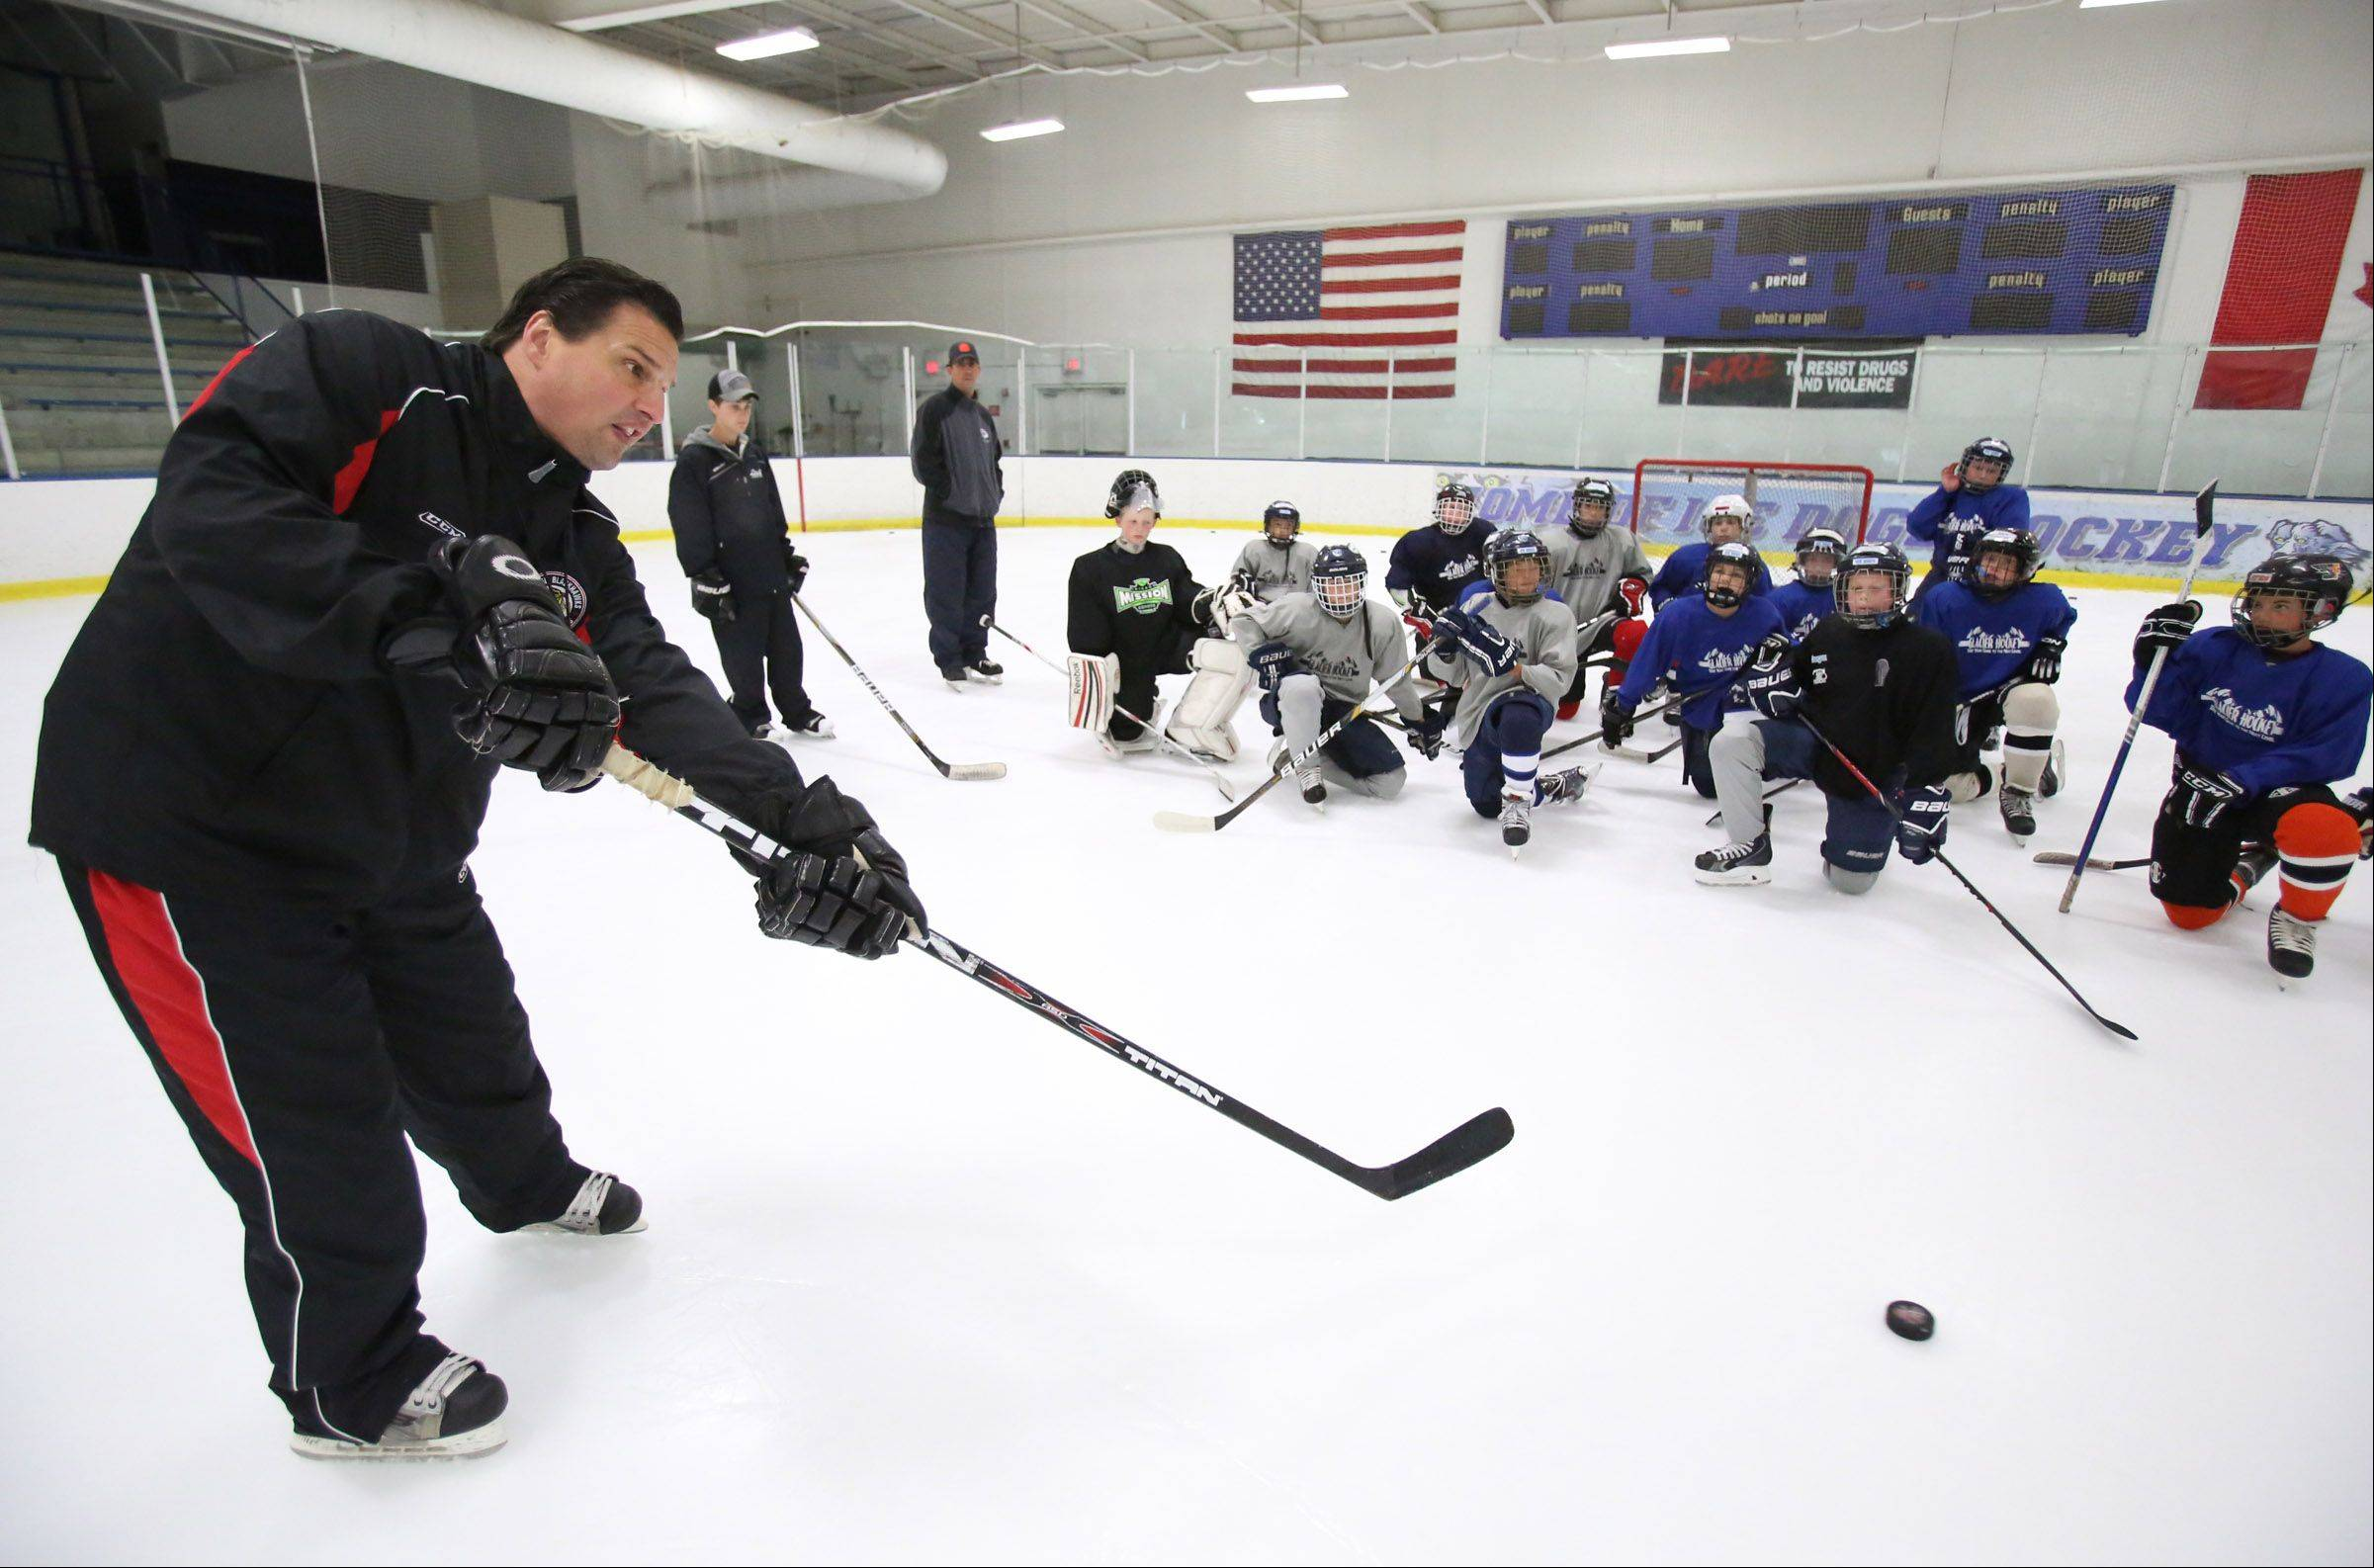 Eddie Olczyk, television color analyst for the Chicago Blackhawks gives passing instruction during a hockey camp at Glacier Ice Arena in Vernon Hills on Friday, August 9, 2013.